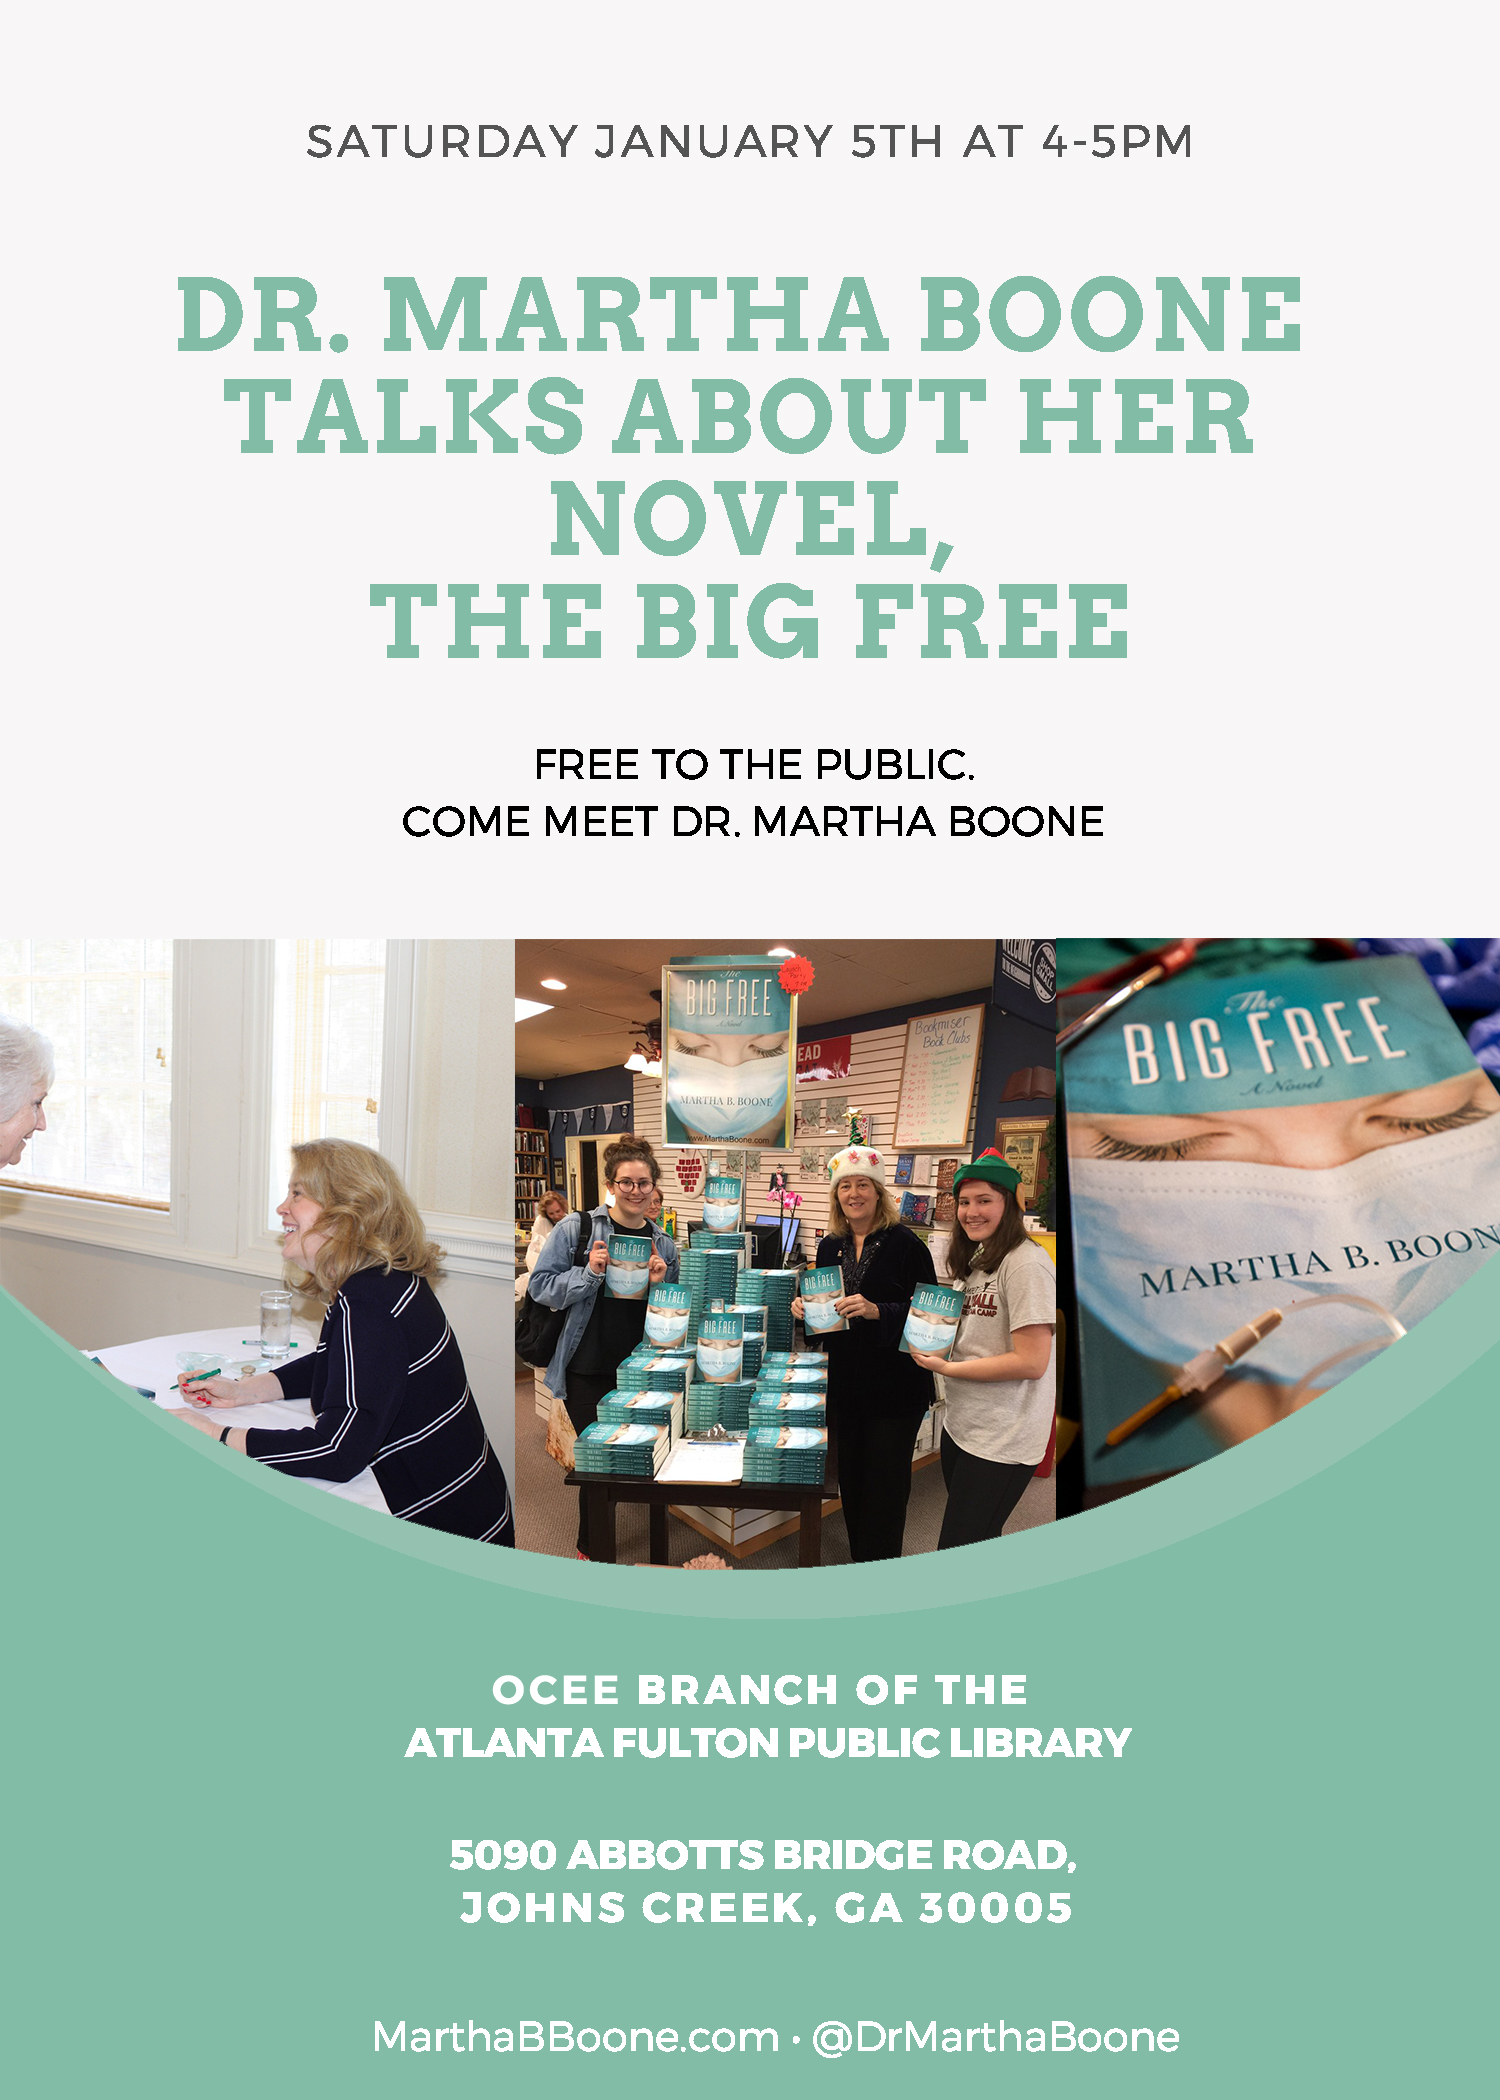 January 5th, 2019: Dr. Martha Boone talks about her novel, The Big Free